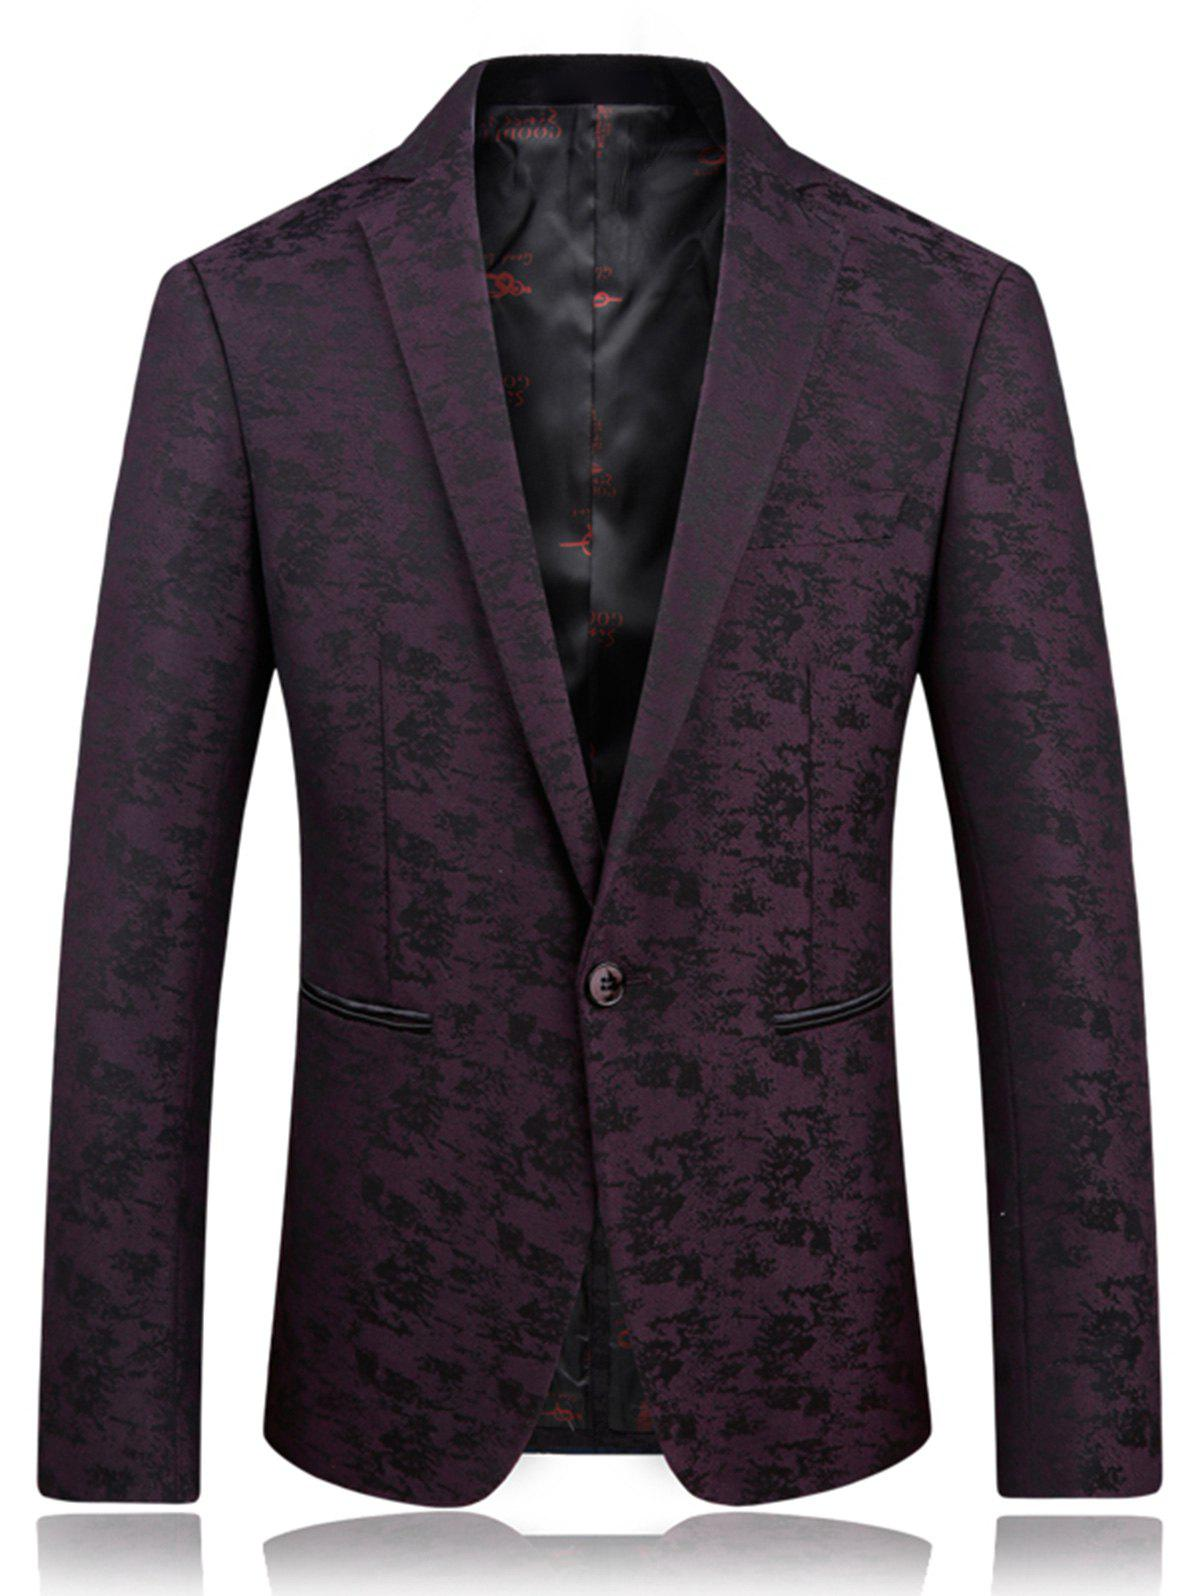 Lapel Jacquard Edging One Button Blazer - Violacé rouge 2XL